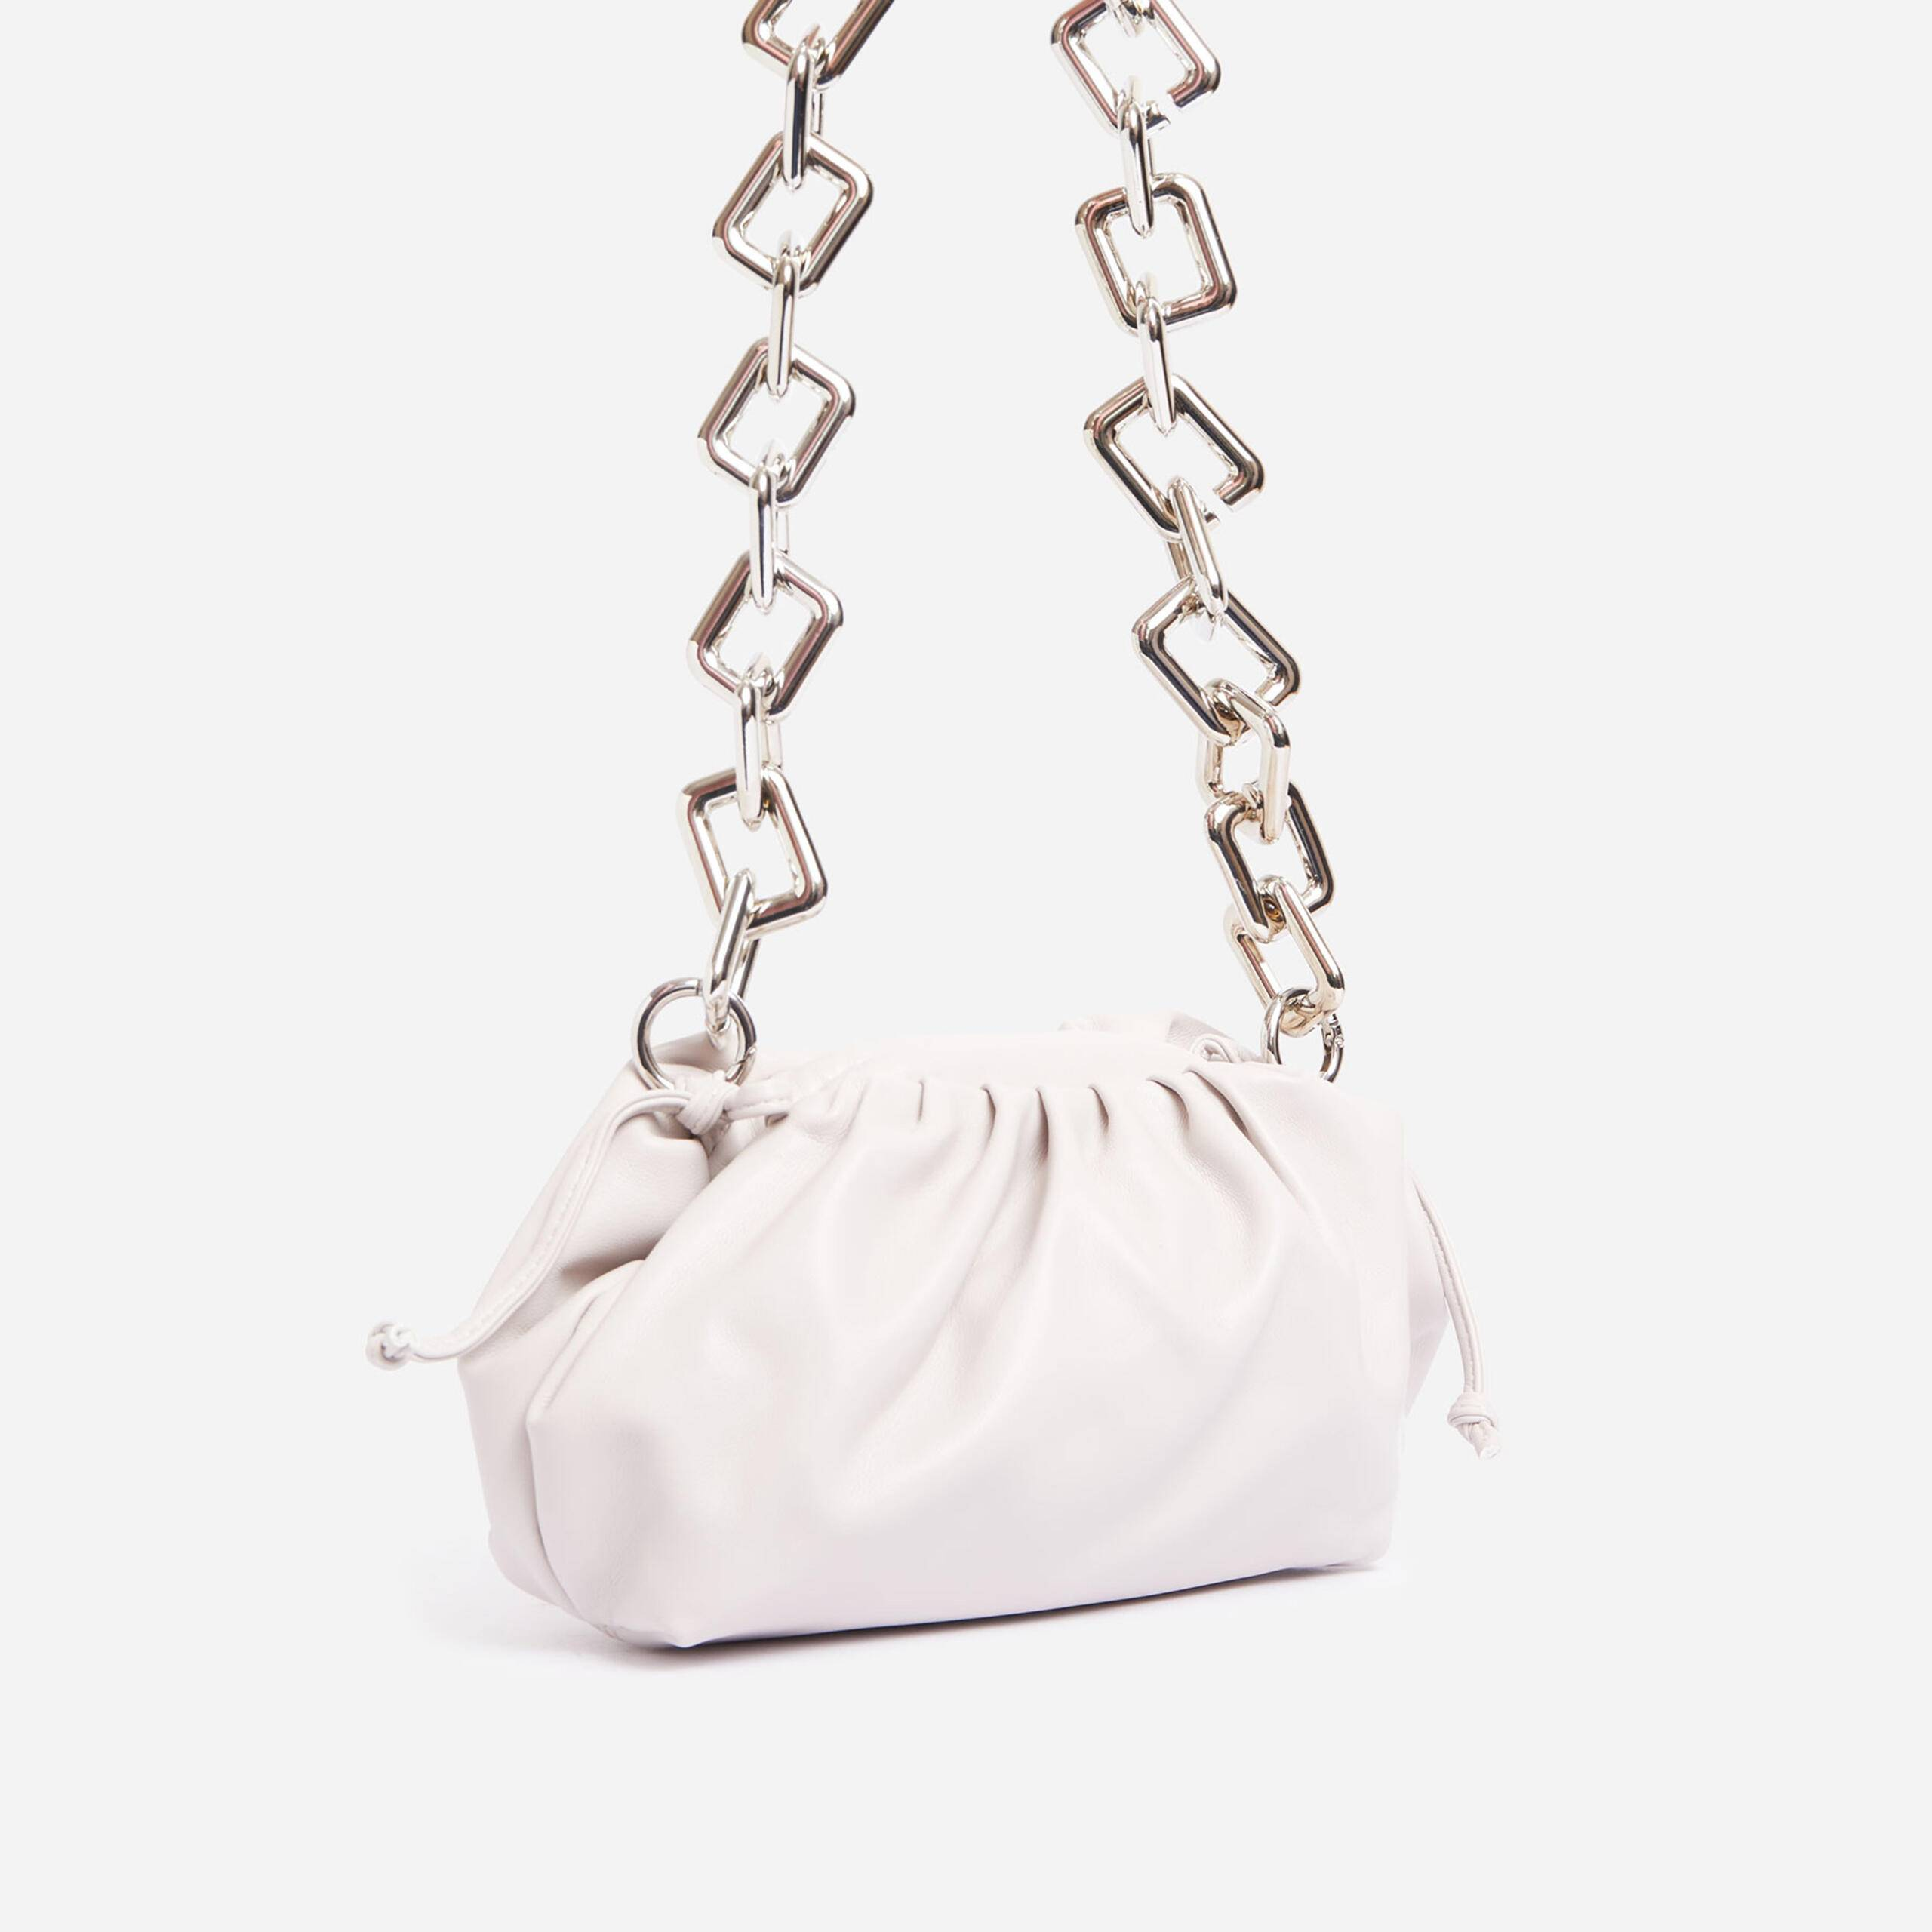 EGO Tia Chunky Chain Pouch Bag In White Faux Leather,, White  - female - Size: One Size